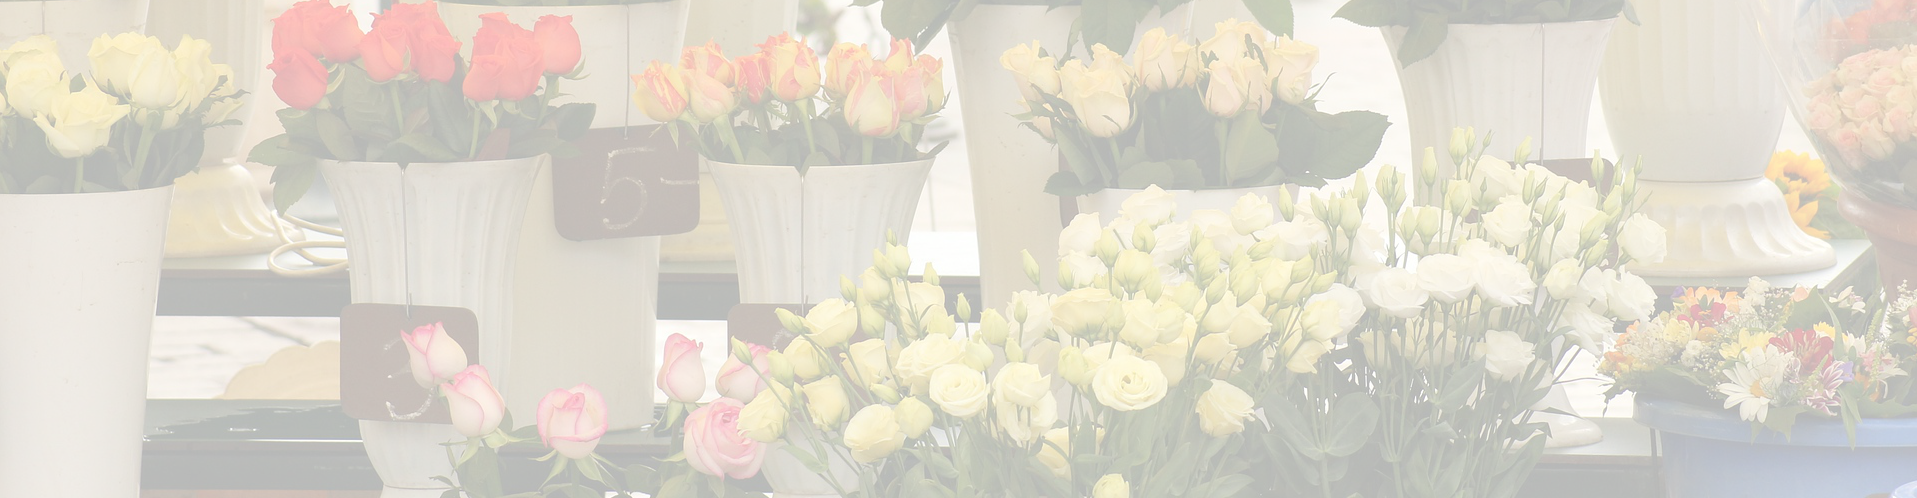 flowers Banner background